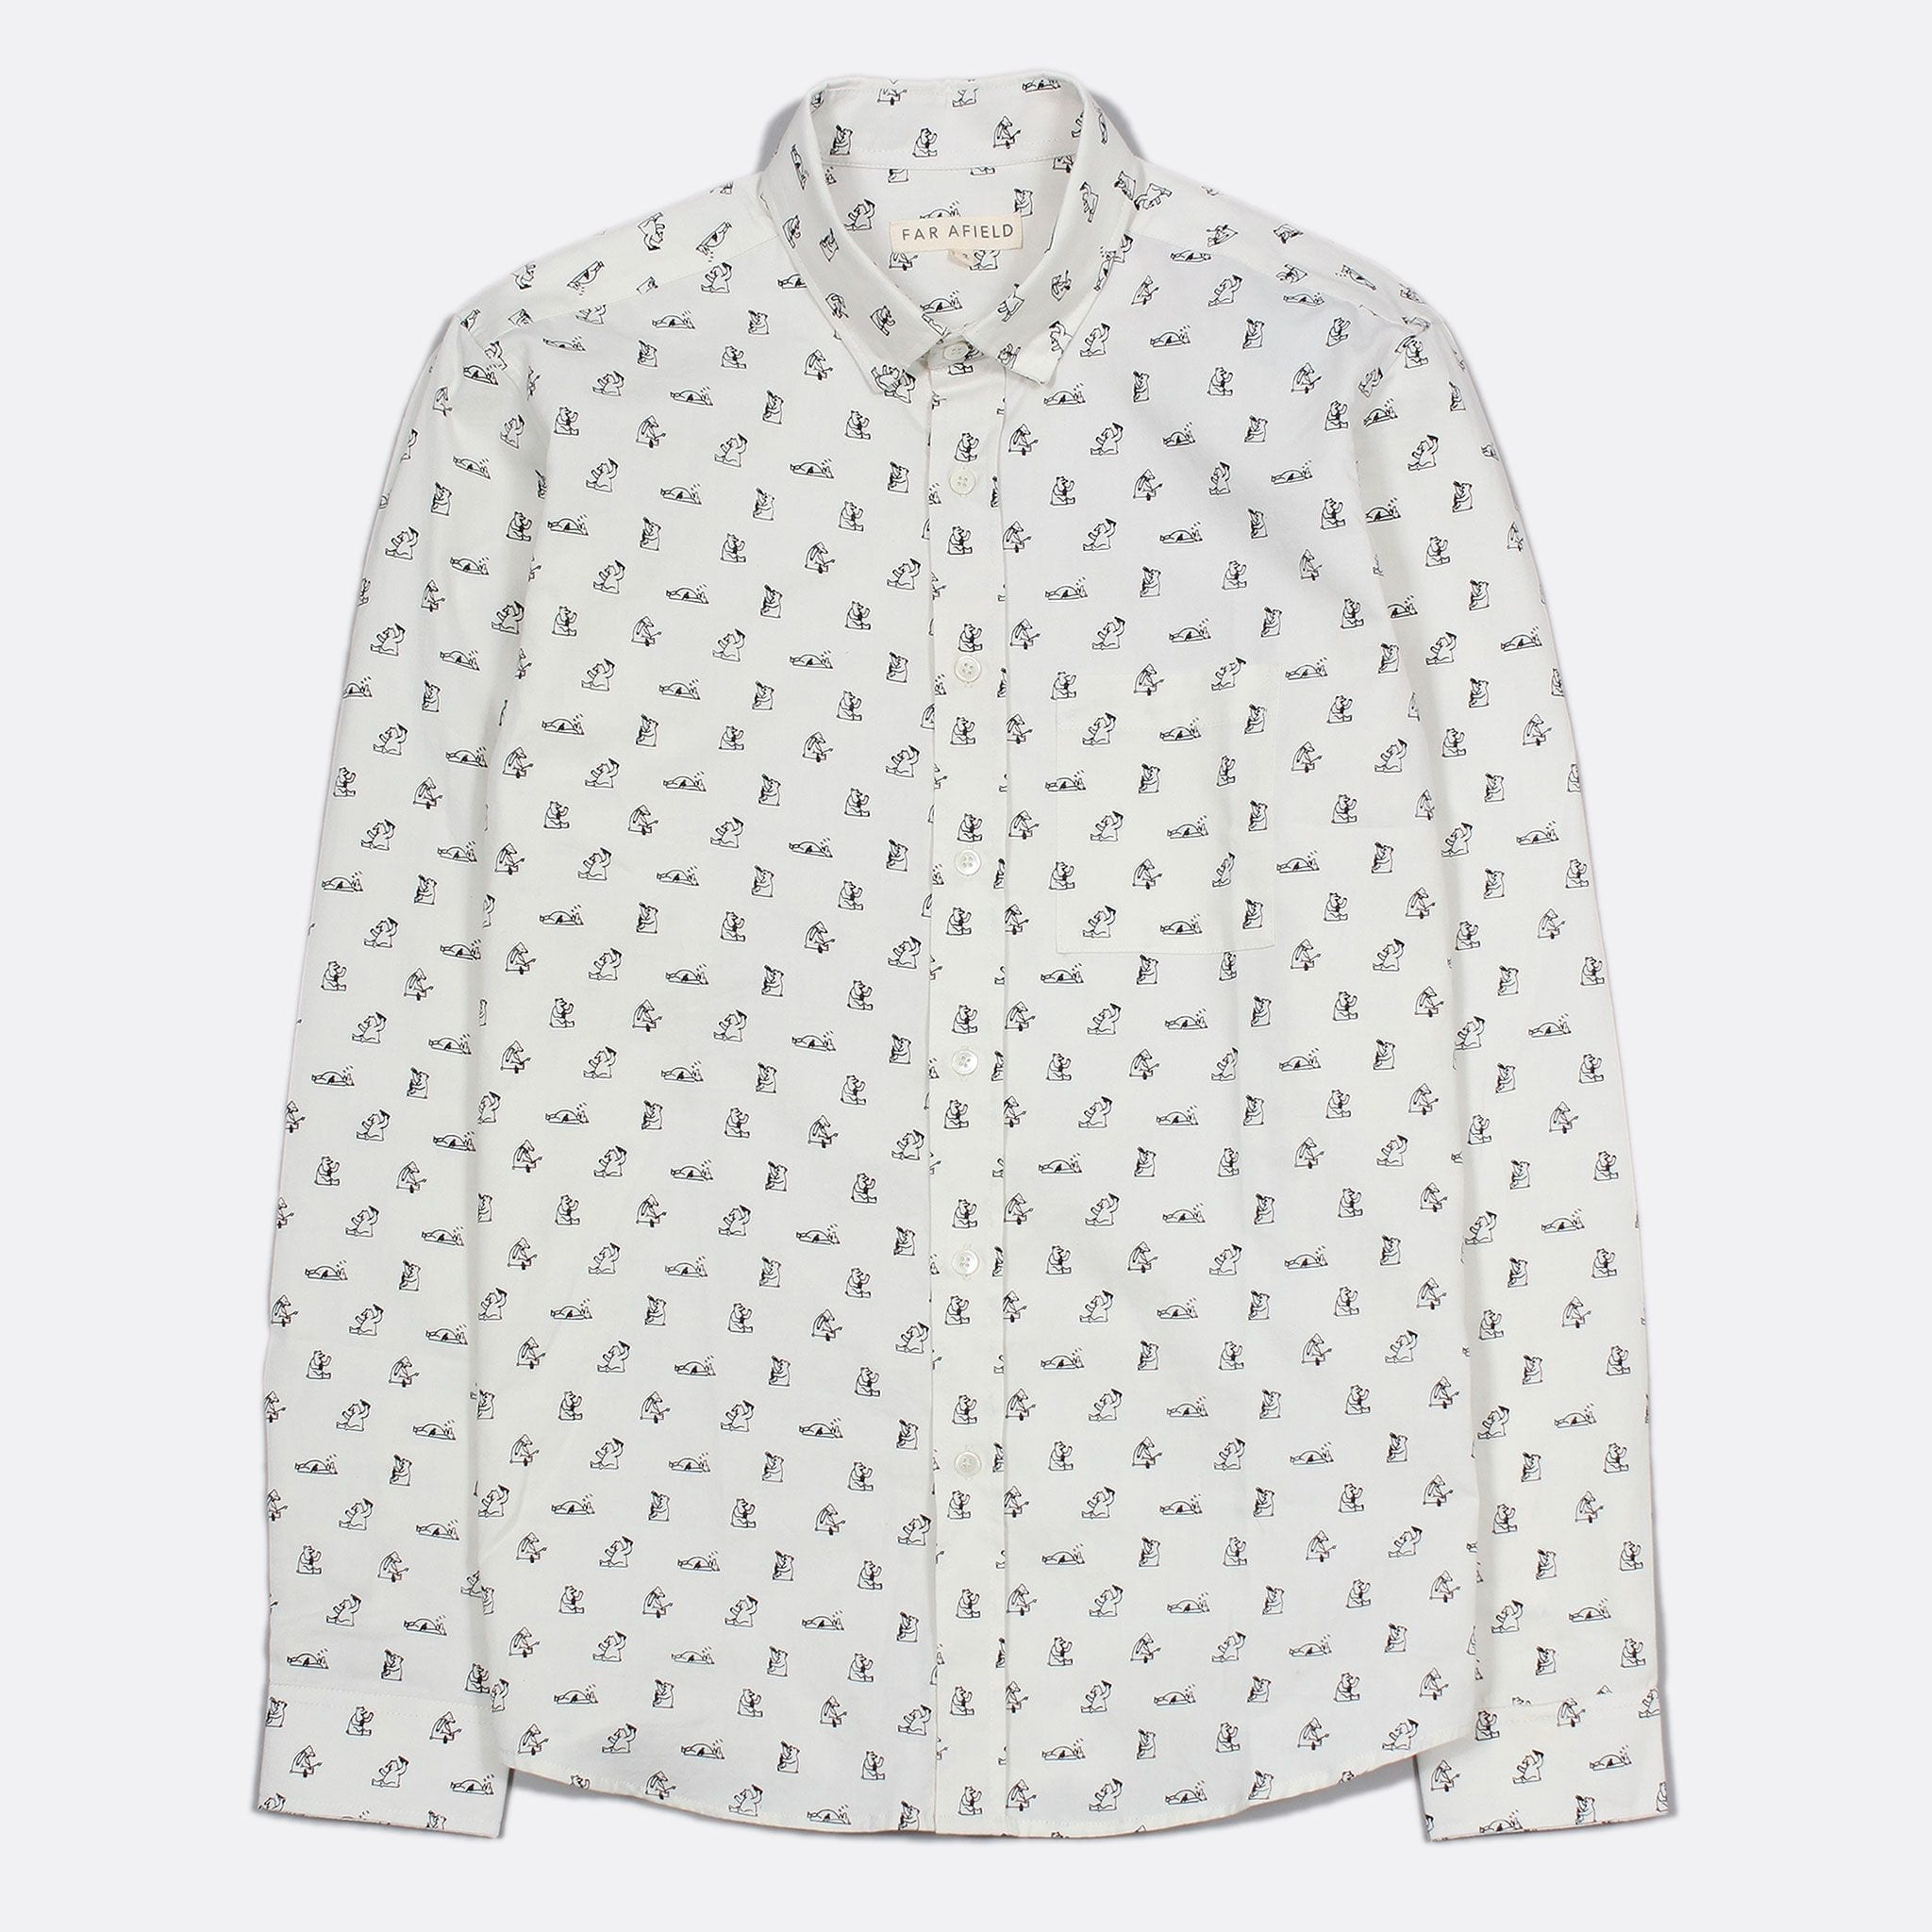 Far Afield Cognito Long Sleeve Shirt a Cotton White Grizzly Bear Repeat Pattern Print Fabric